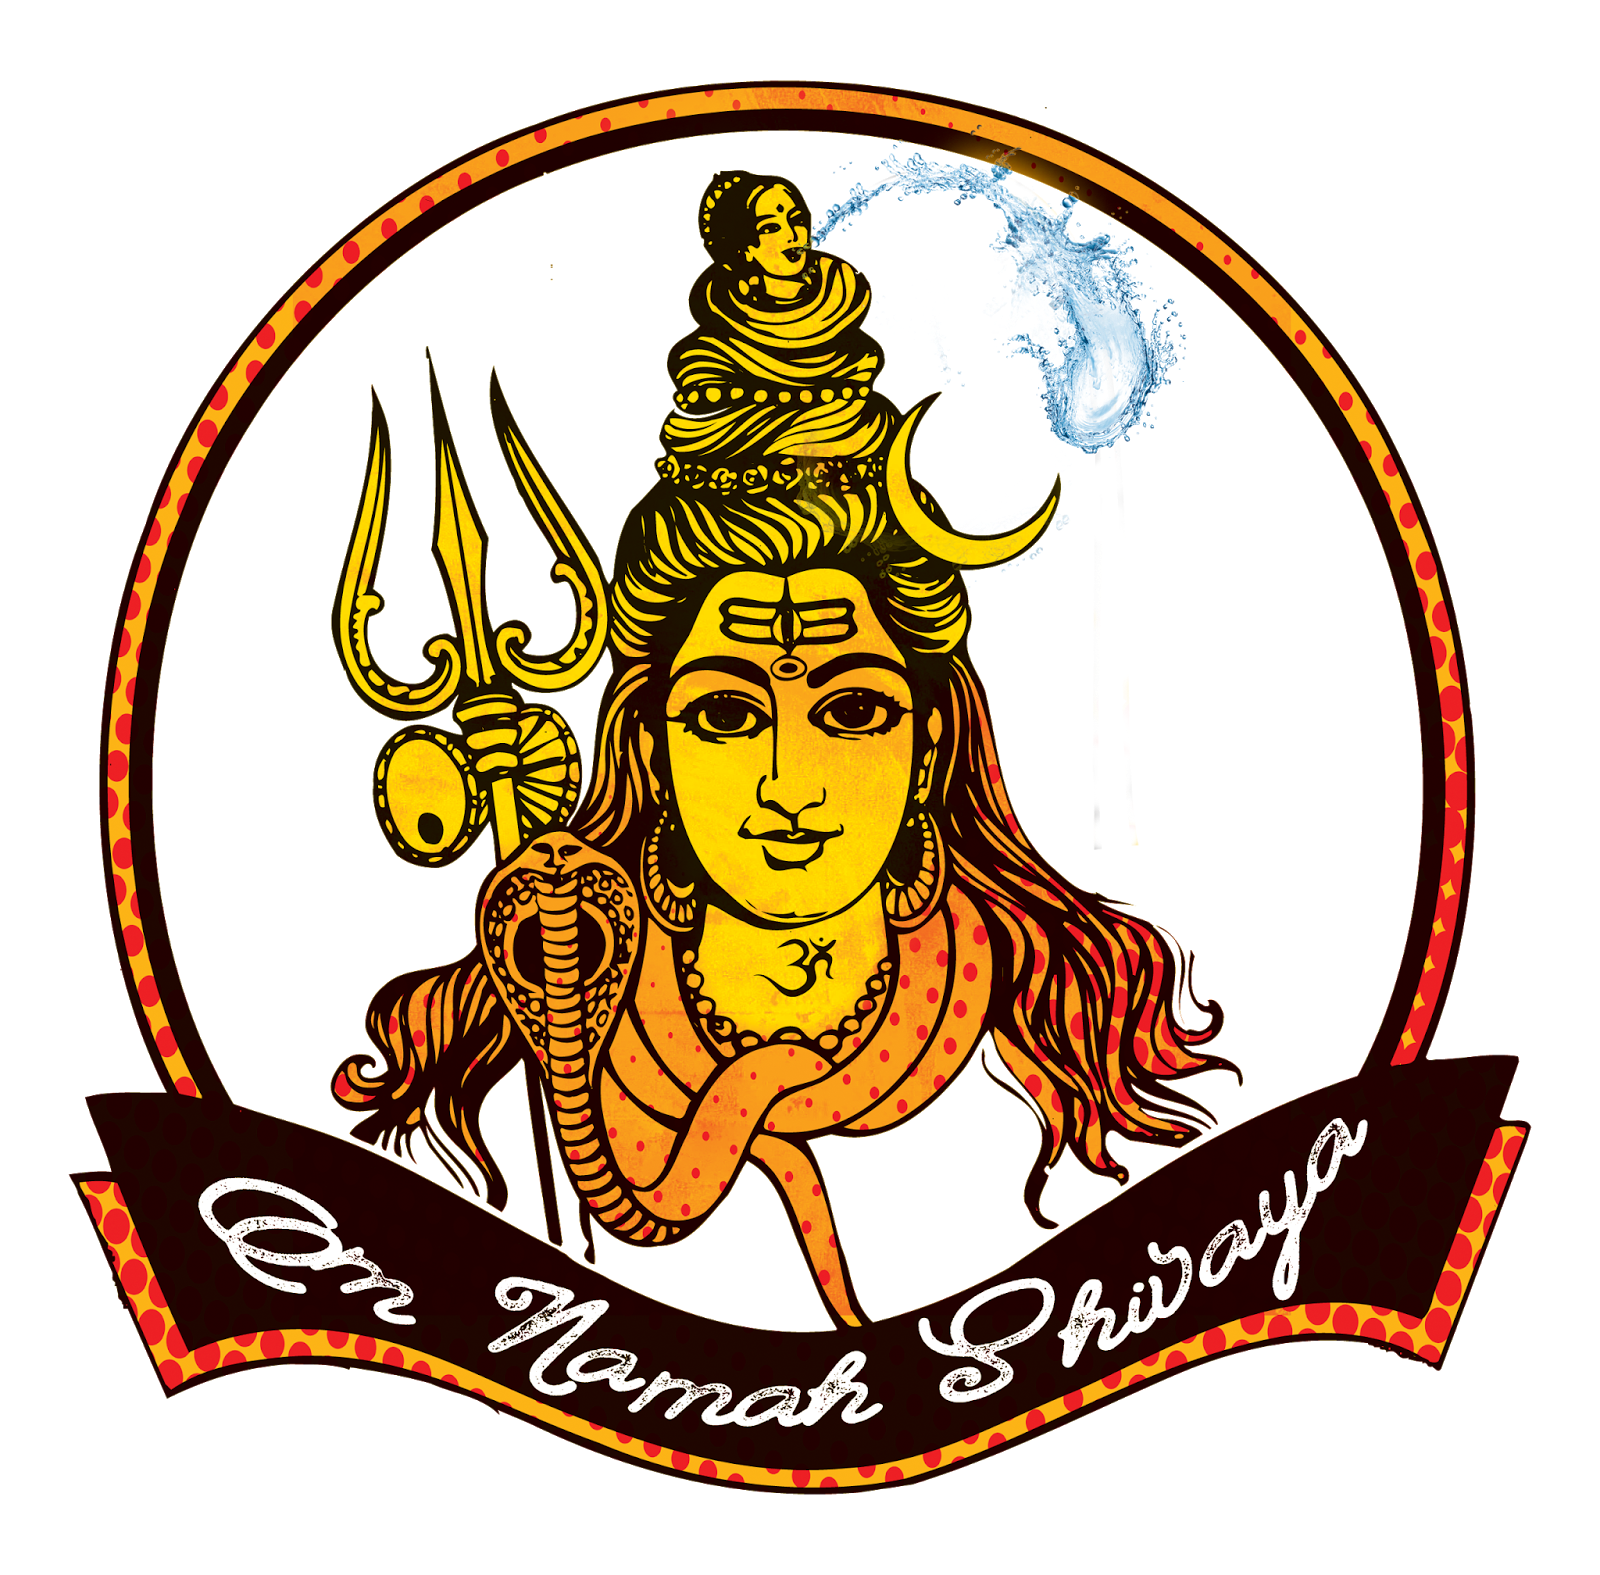 Lord shiva Png Clipart image transparent, Lord Ganga devi Transparent image  png